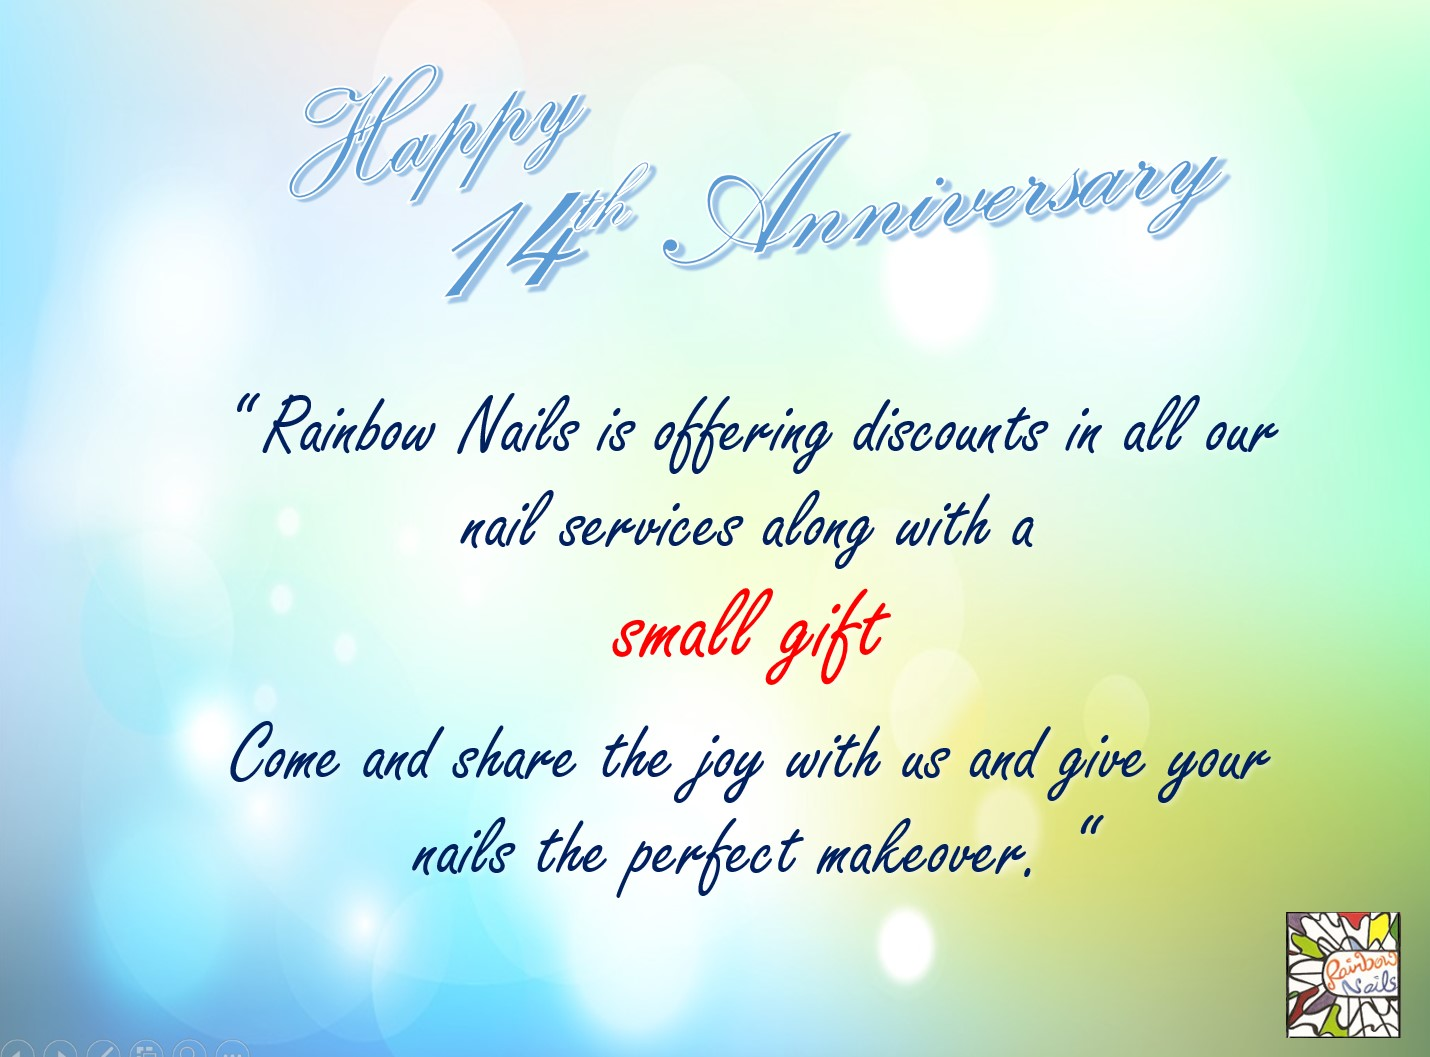 Rainbow Nails 14th Anniversary Promotion